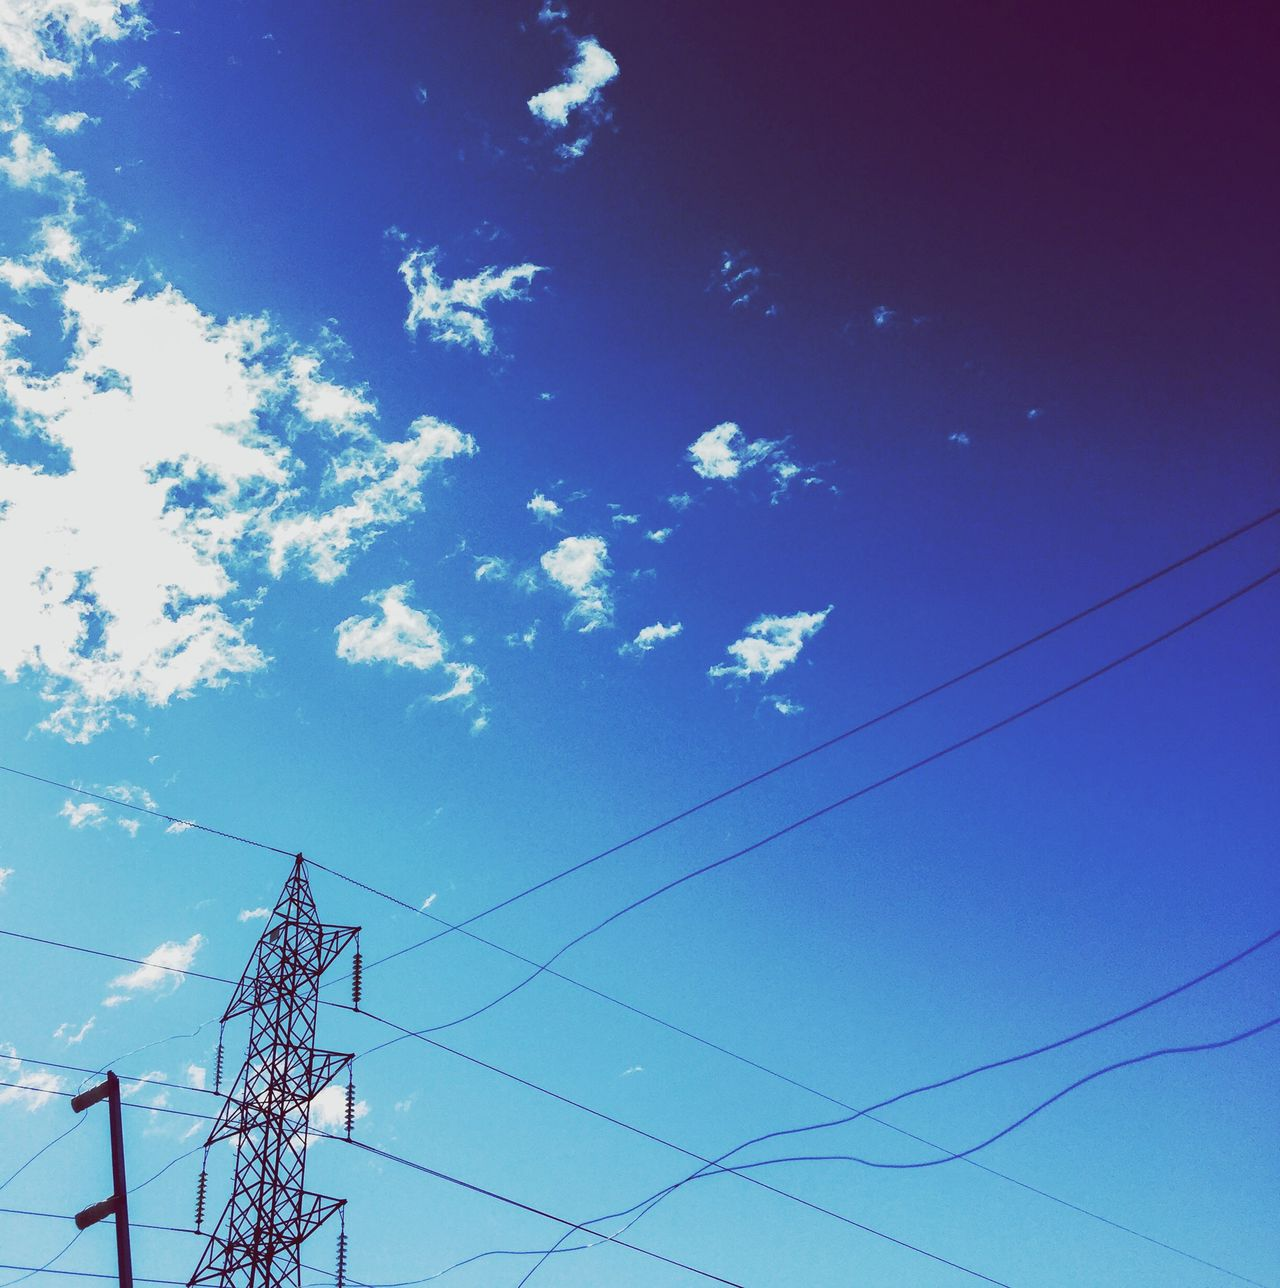 Cable Connection Low Angle View Electricity  Power Line  Power Supply Sky Blue Fuel And Power Generation Electricity Pylon No People Day Technology Outdoors Nature EyeEmNewHere